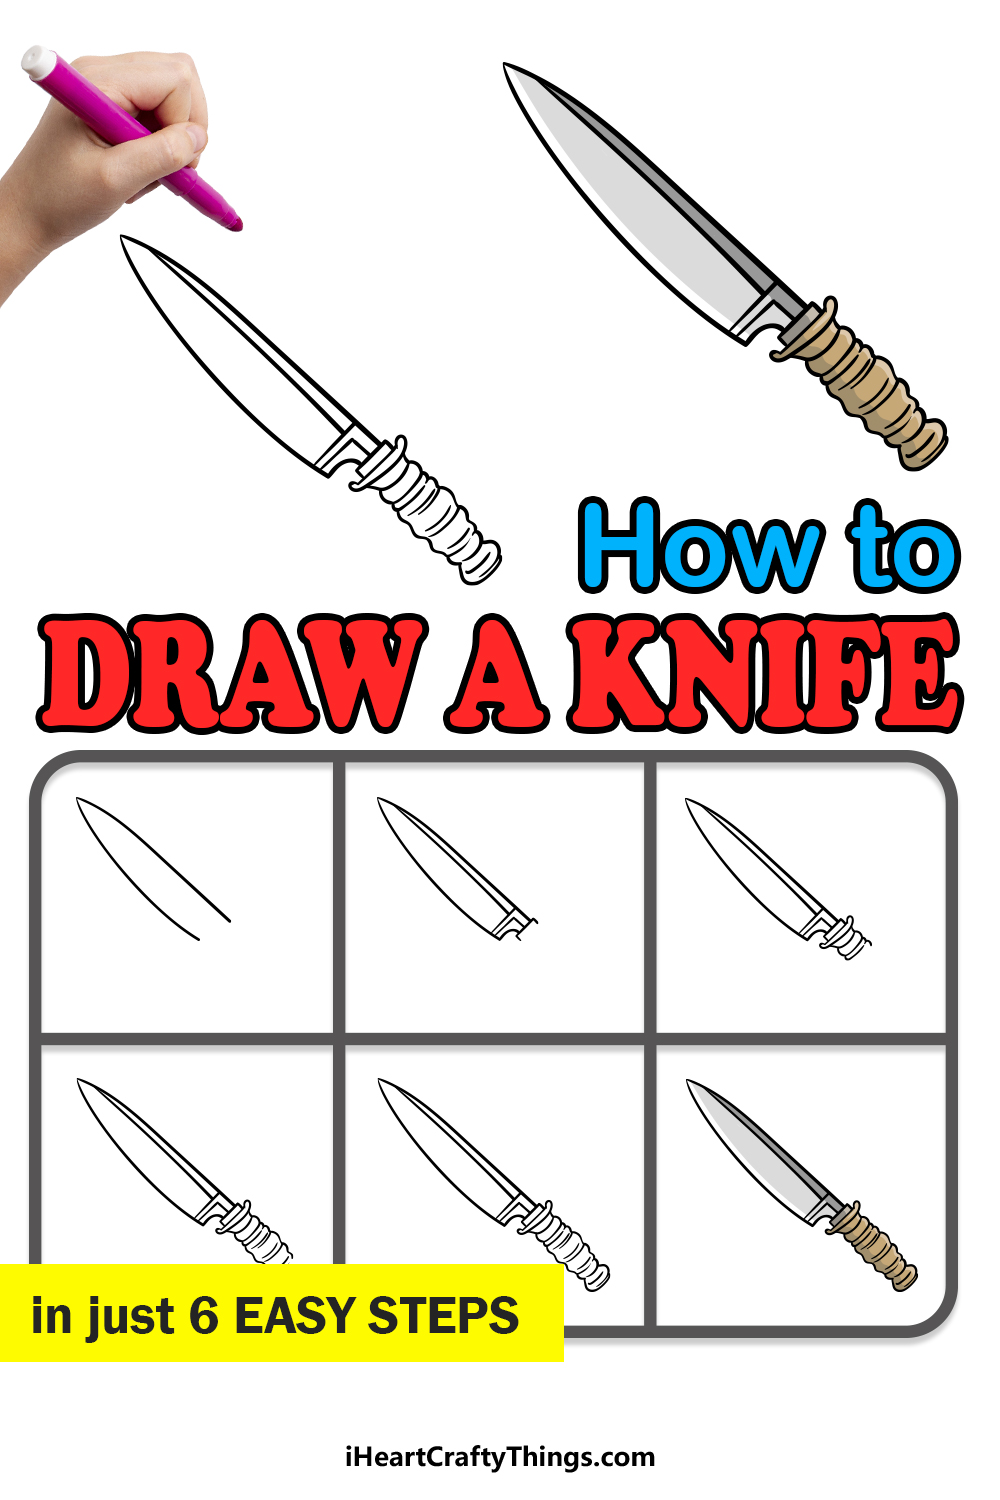 how to draw a knife in 6 easy steps